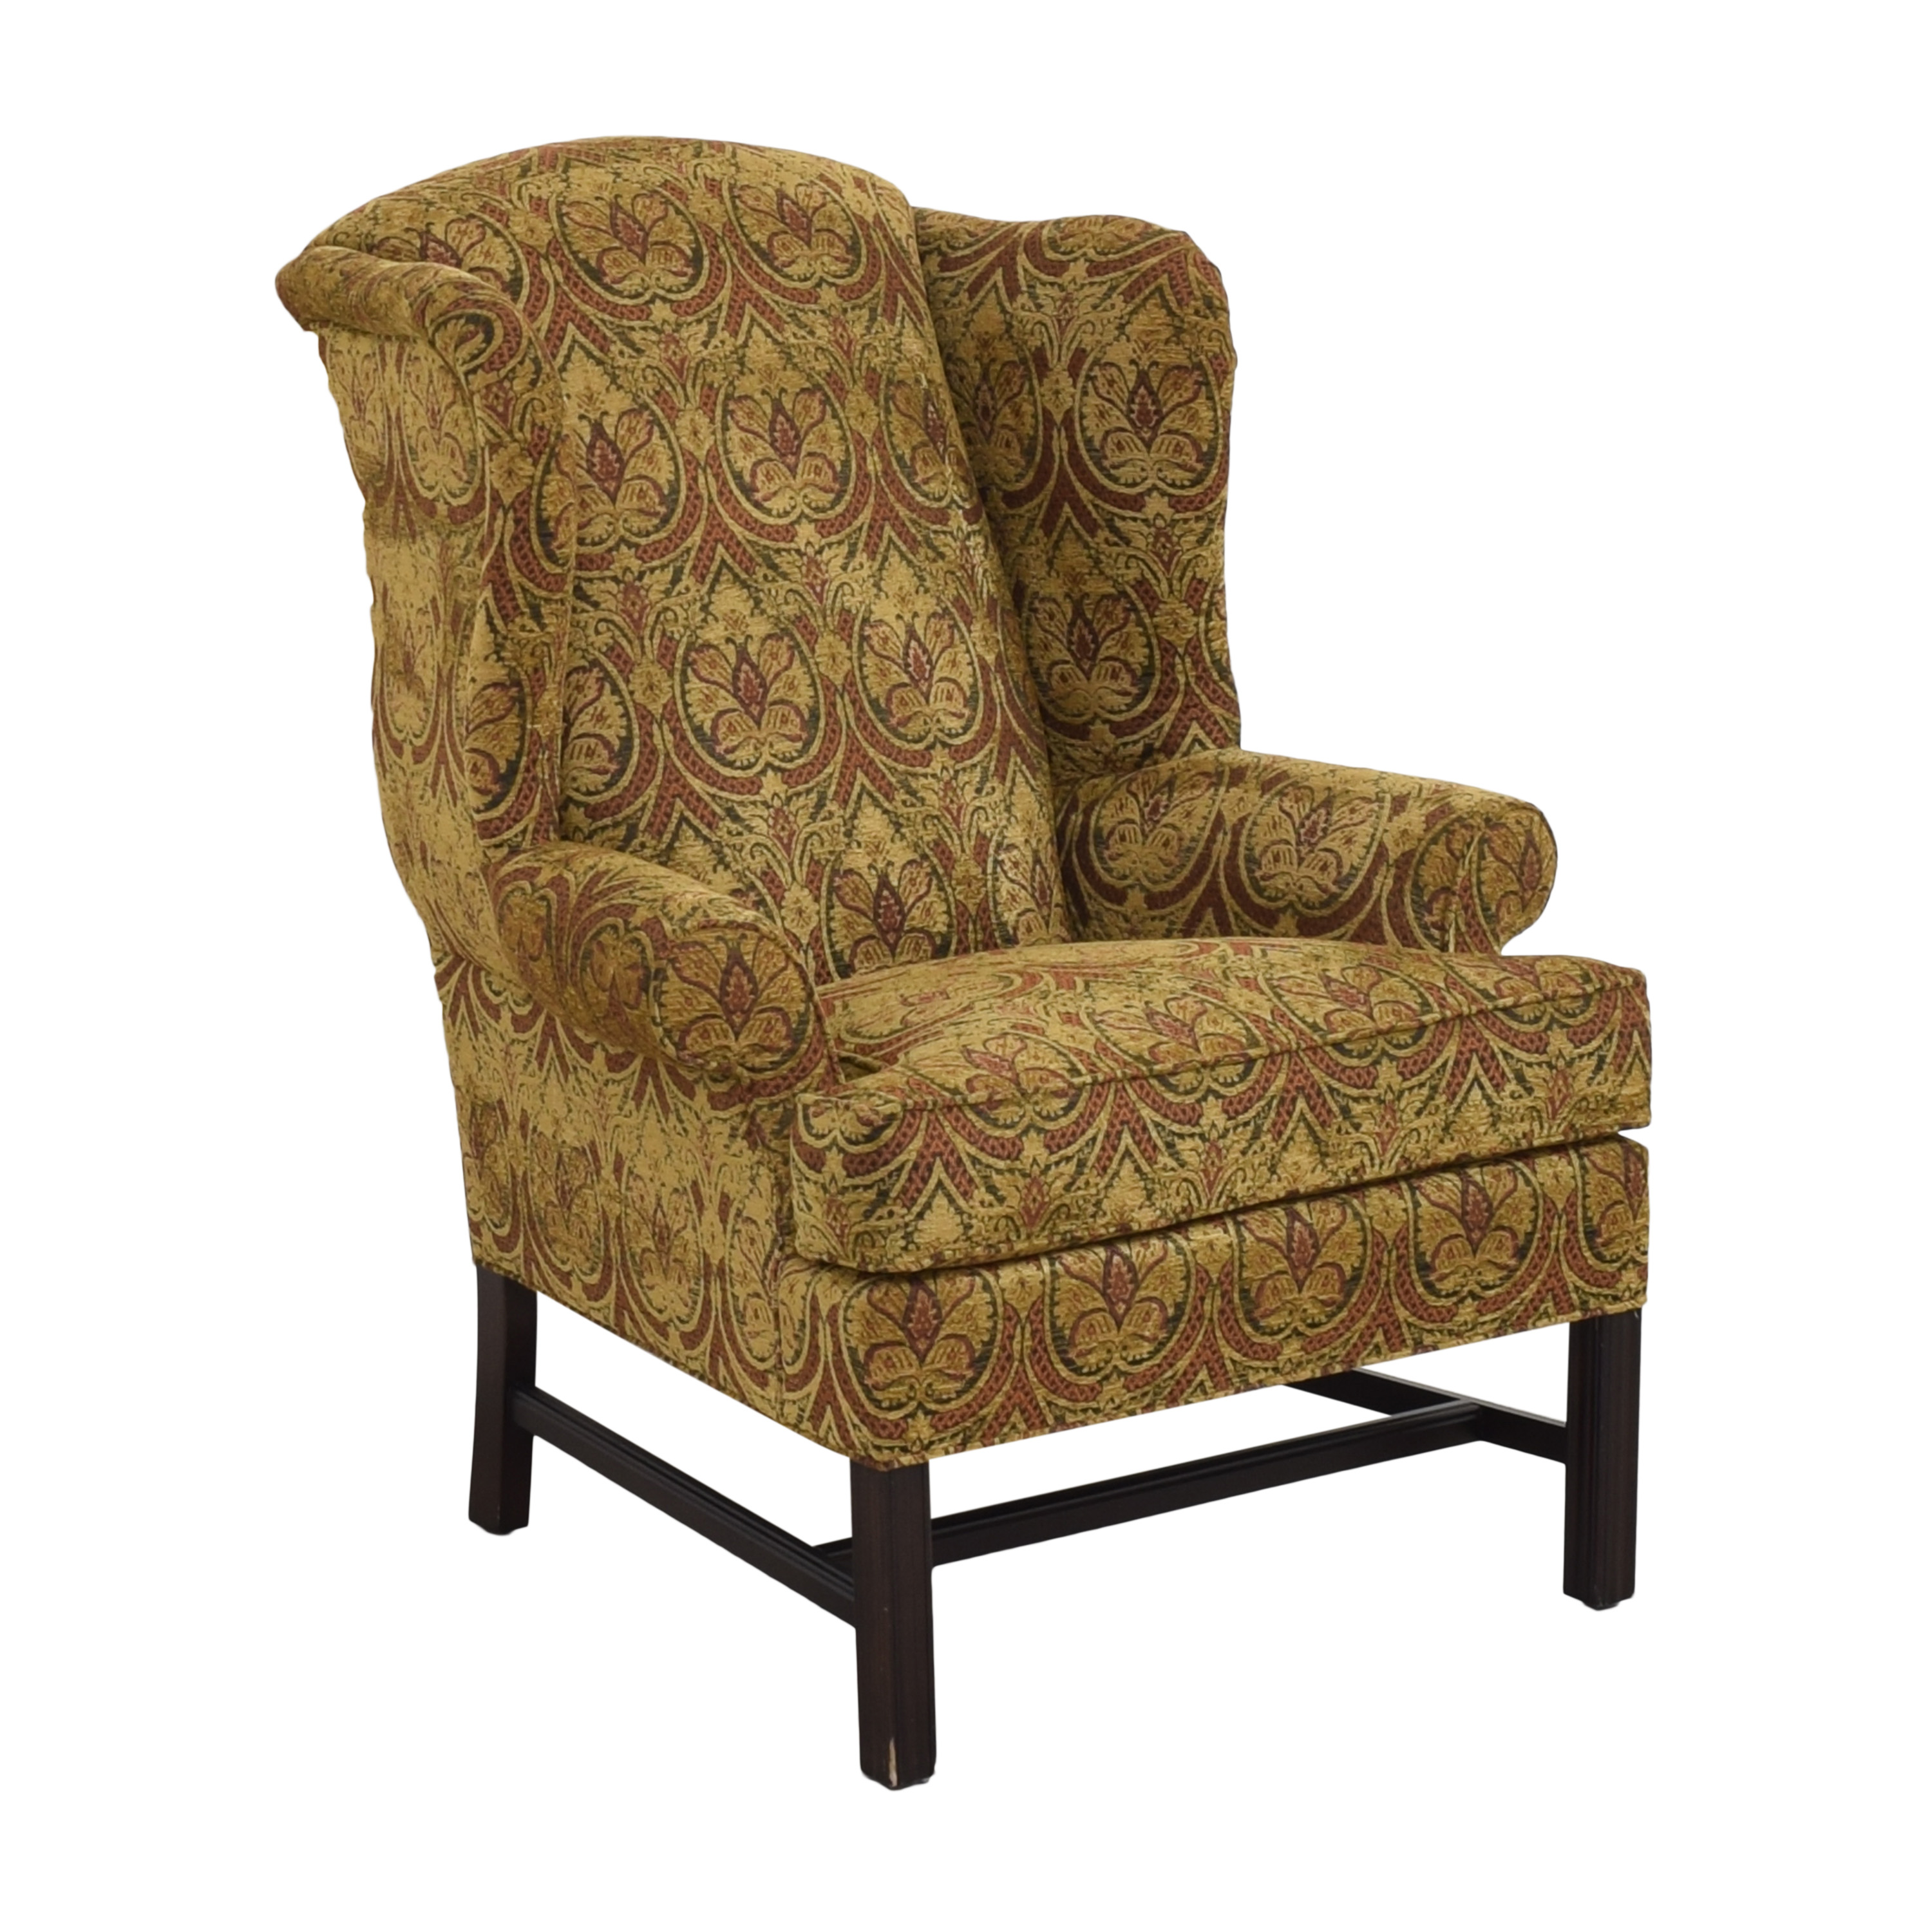 Kravet Wing Chair with Ottoman / Chairs